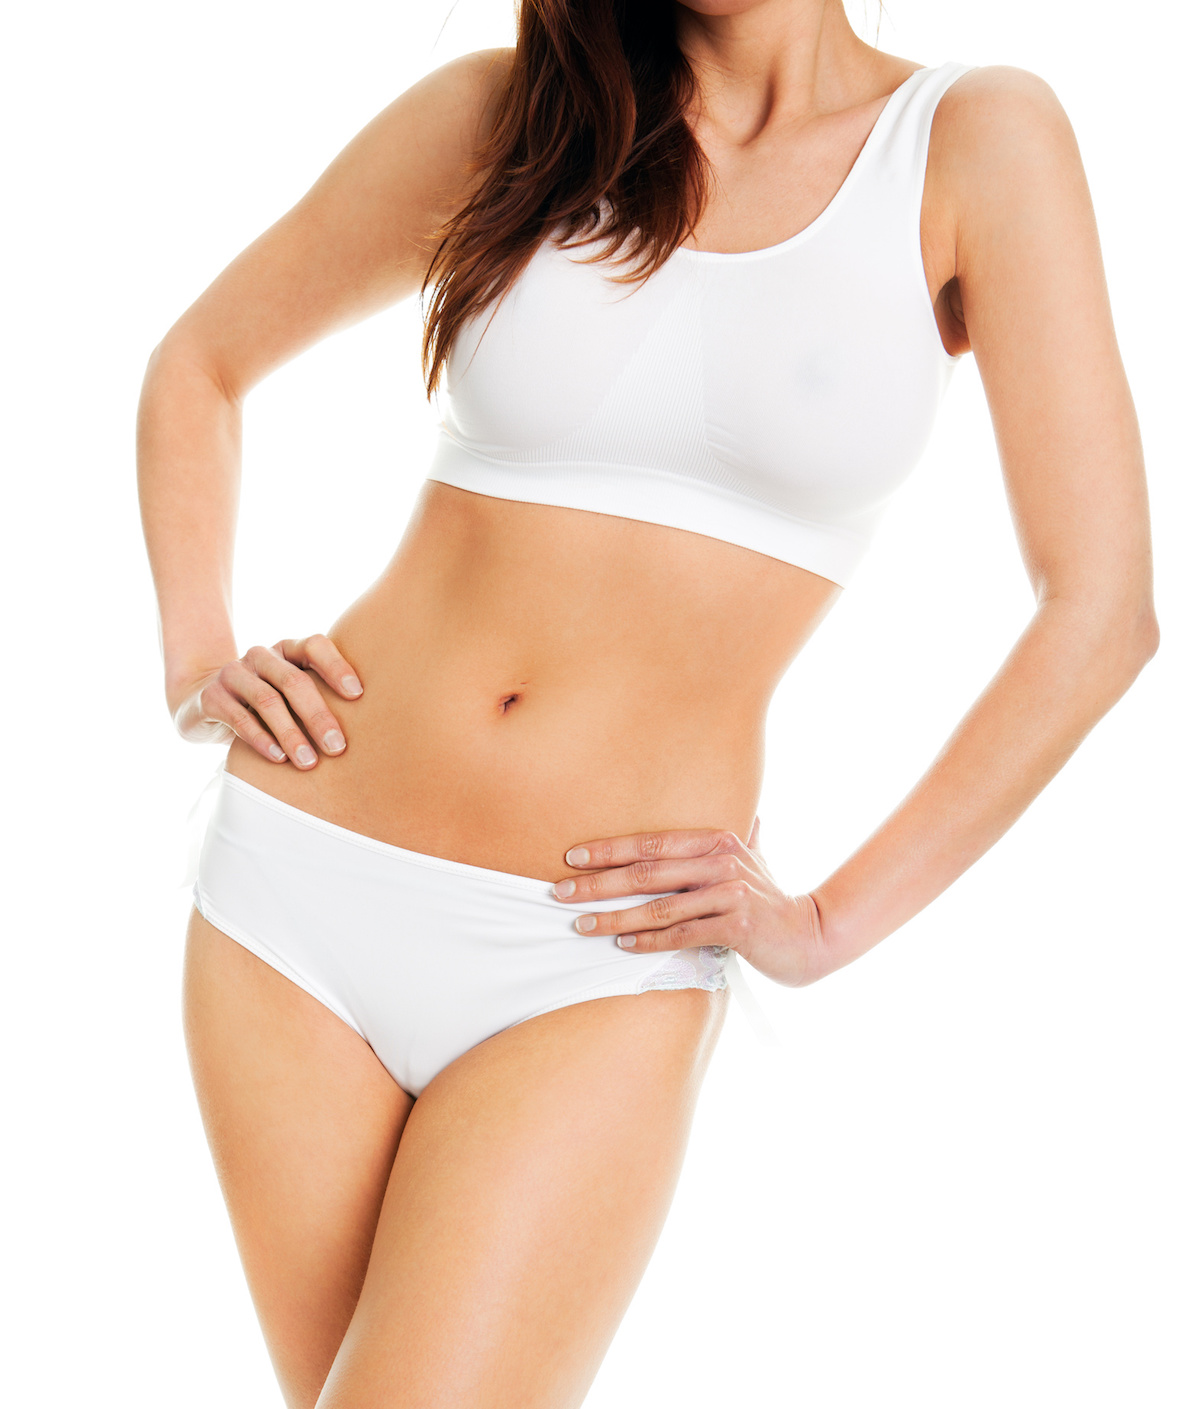 swiss-care-clinic-london-body-sculpting